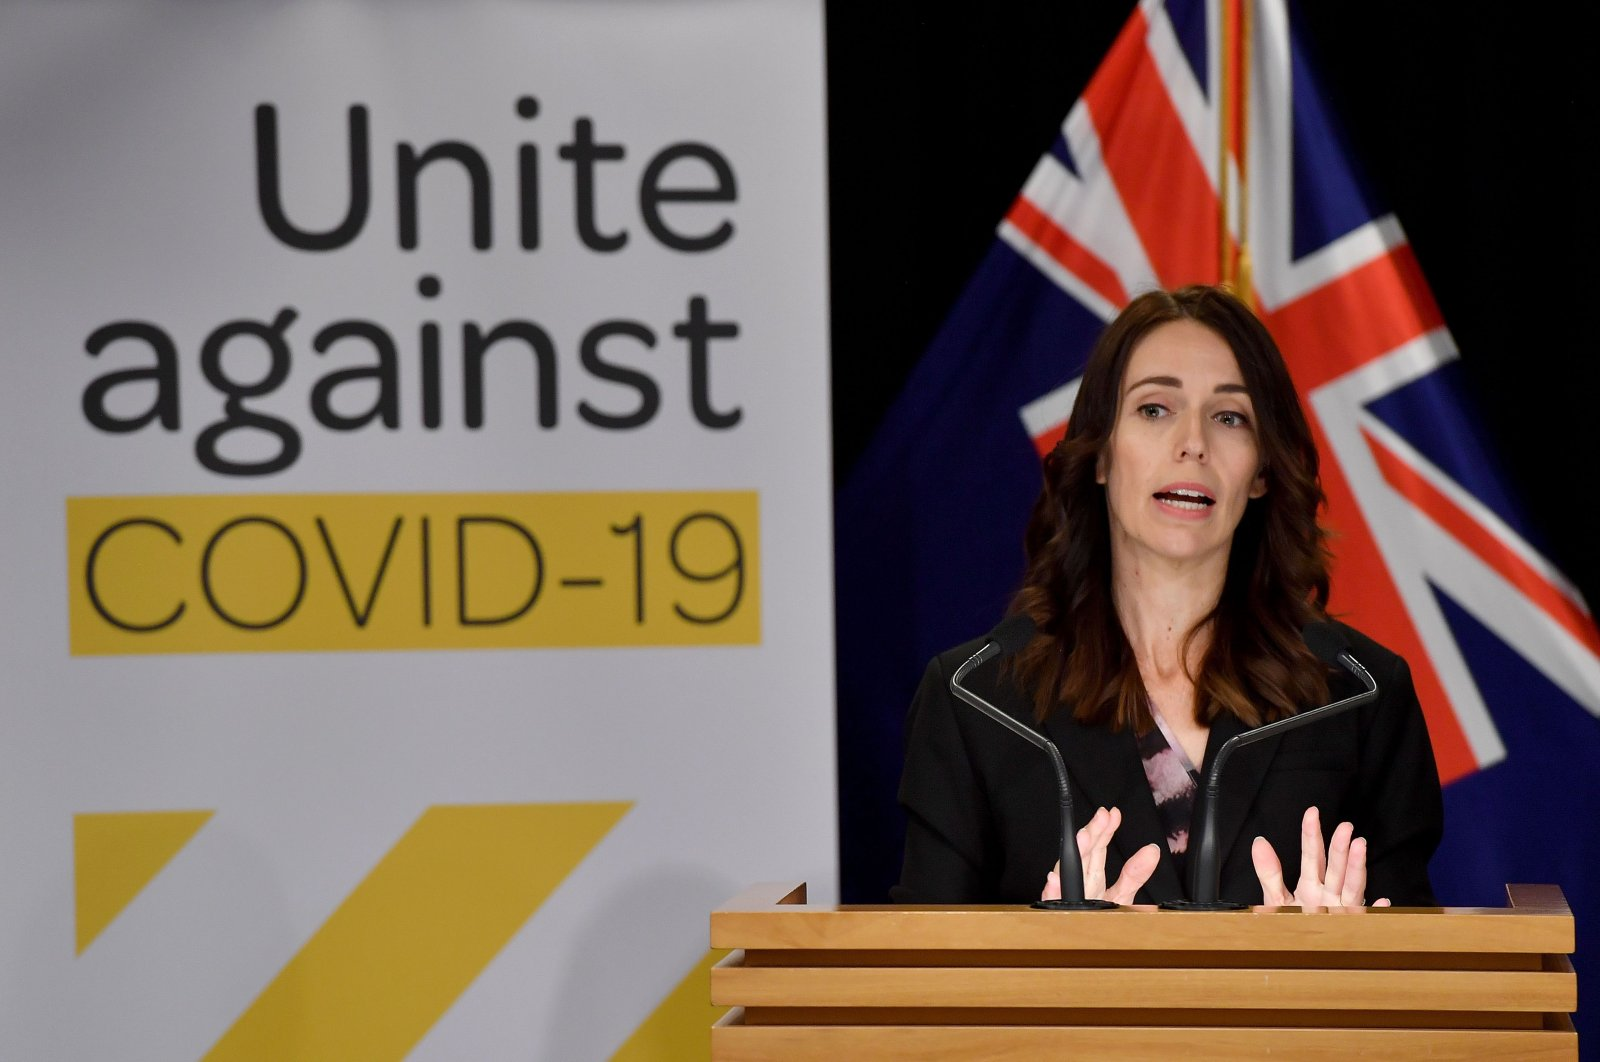 This file photo shows New Zealand's Prime Minister Jacinda Ardern speaking to the media during a press conference one day before the country went on lockdown to stop the progression of the coronavirus, at Parliament in Wellington, March 24, 2020. (AFP Photo)